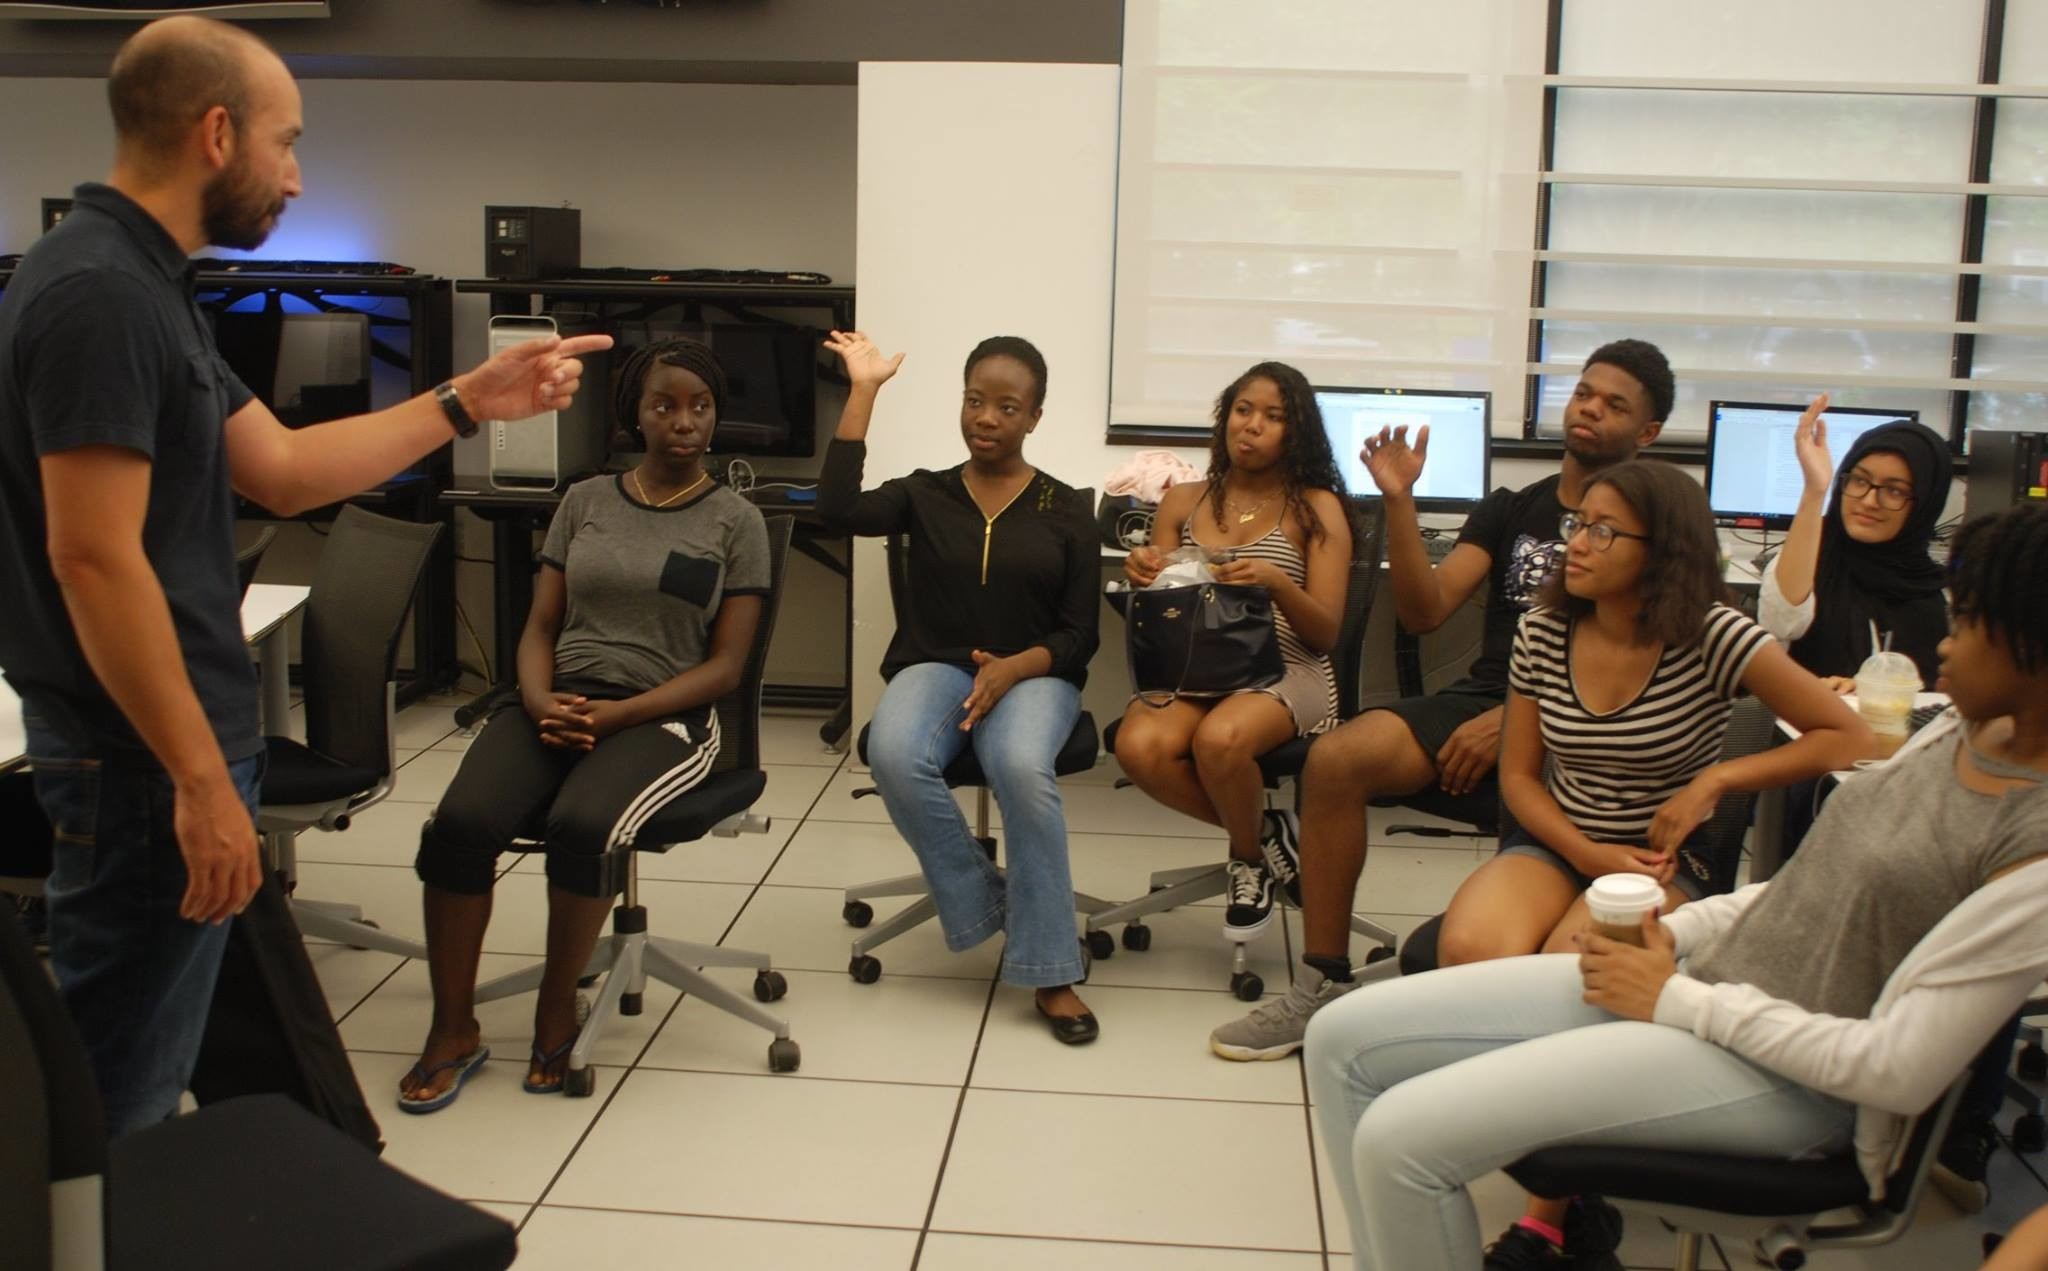 Hofstra Professor Mario Gonzalez taught a workshop on photography and videography as part of the program.